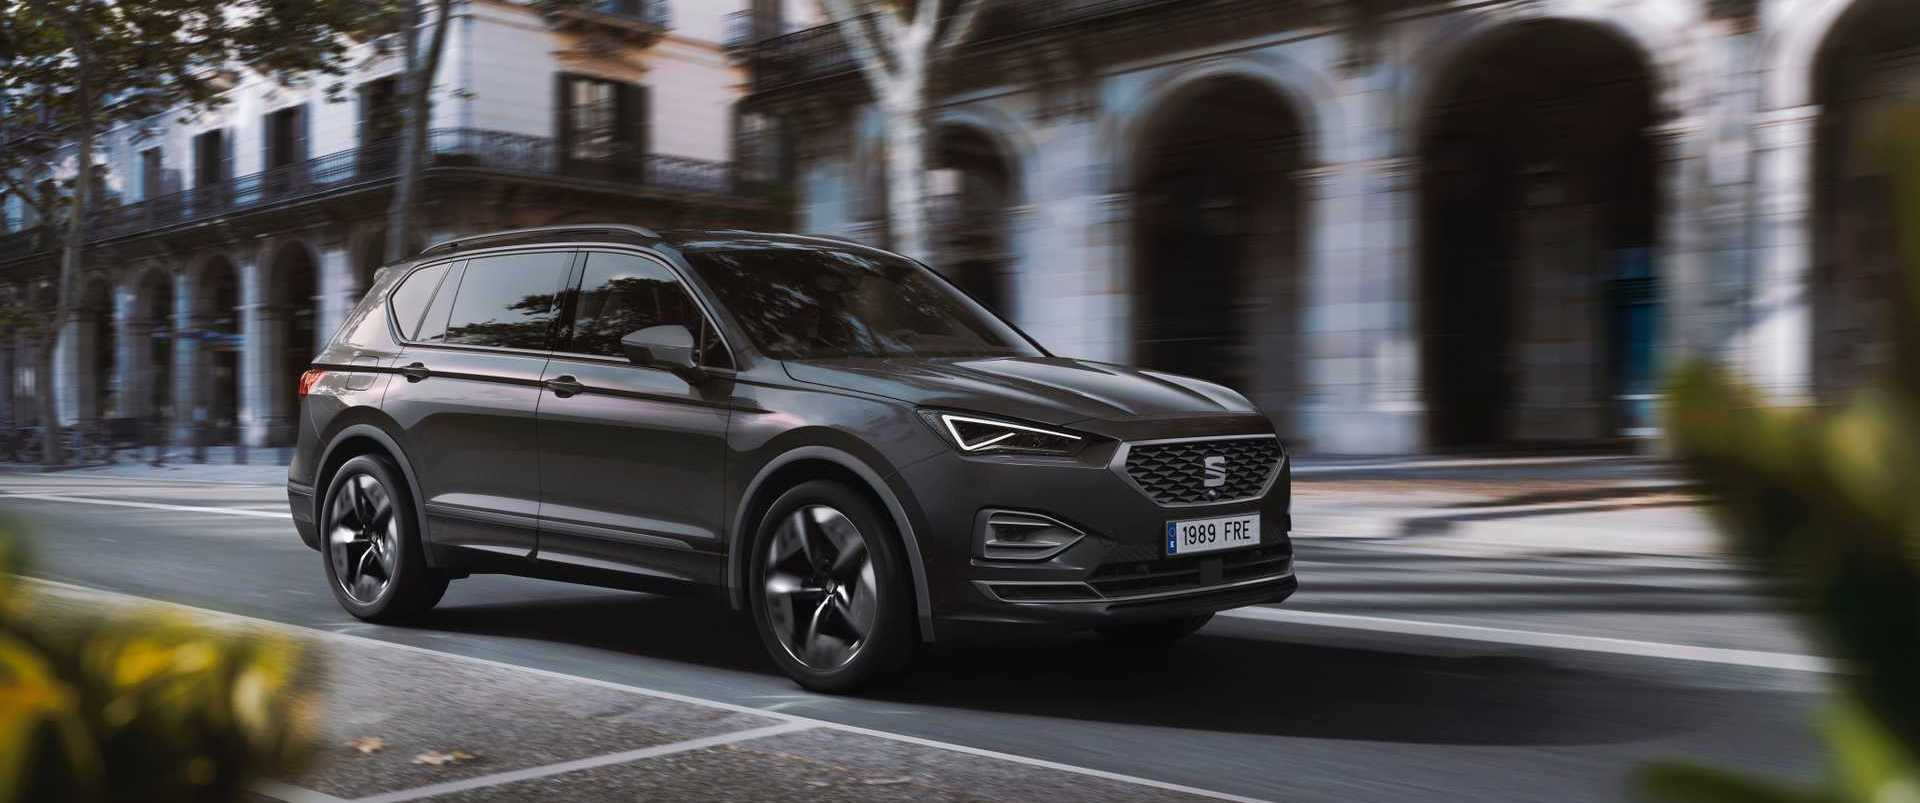 2020 SEAT Tarraco FR Sporty Trim Debuts With PHEV Powertrain